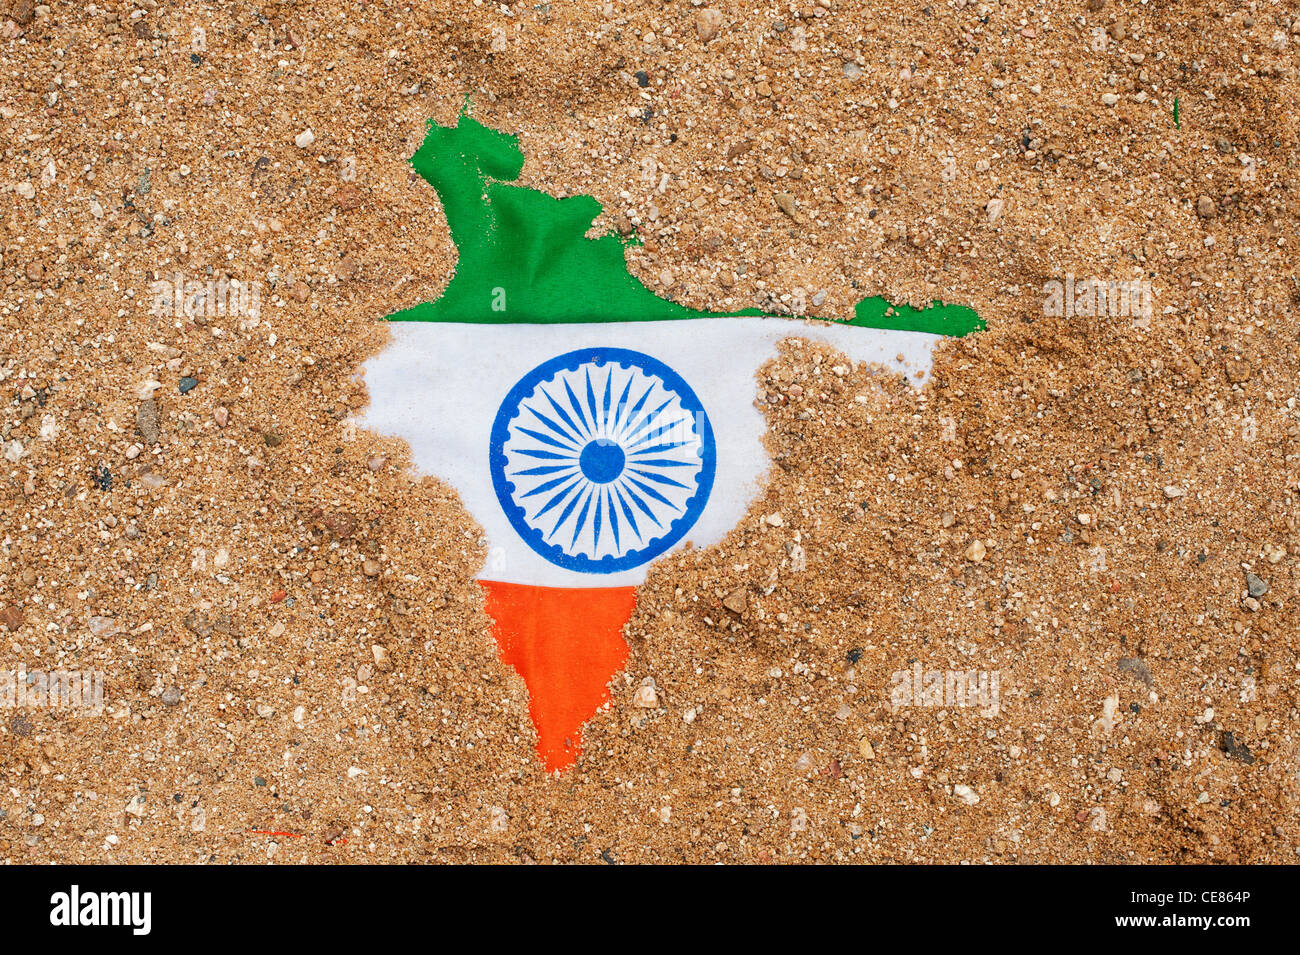 India Flag Map: Indian Flag Showing Through Sand Shaped Like The Map Of